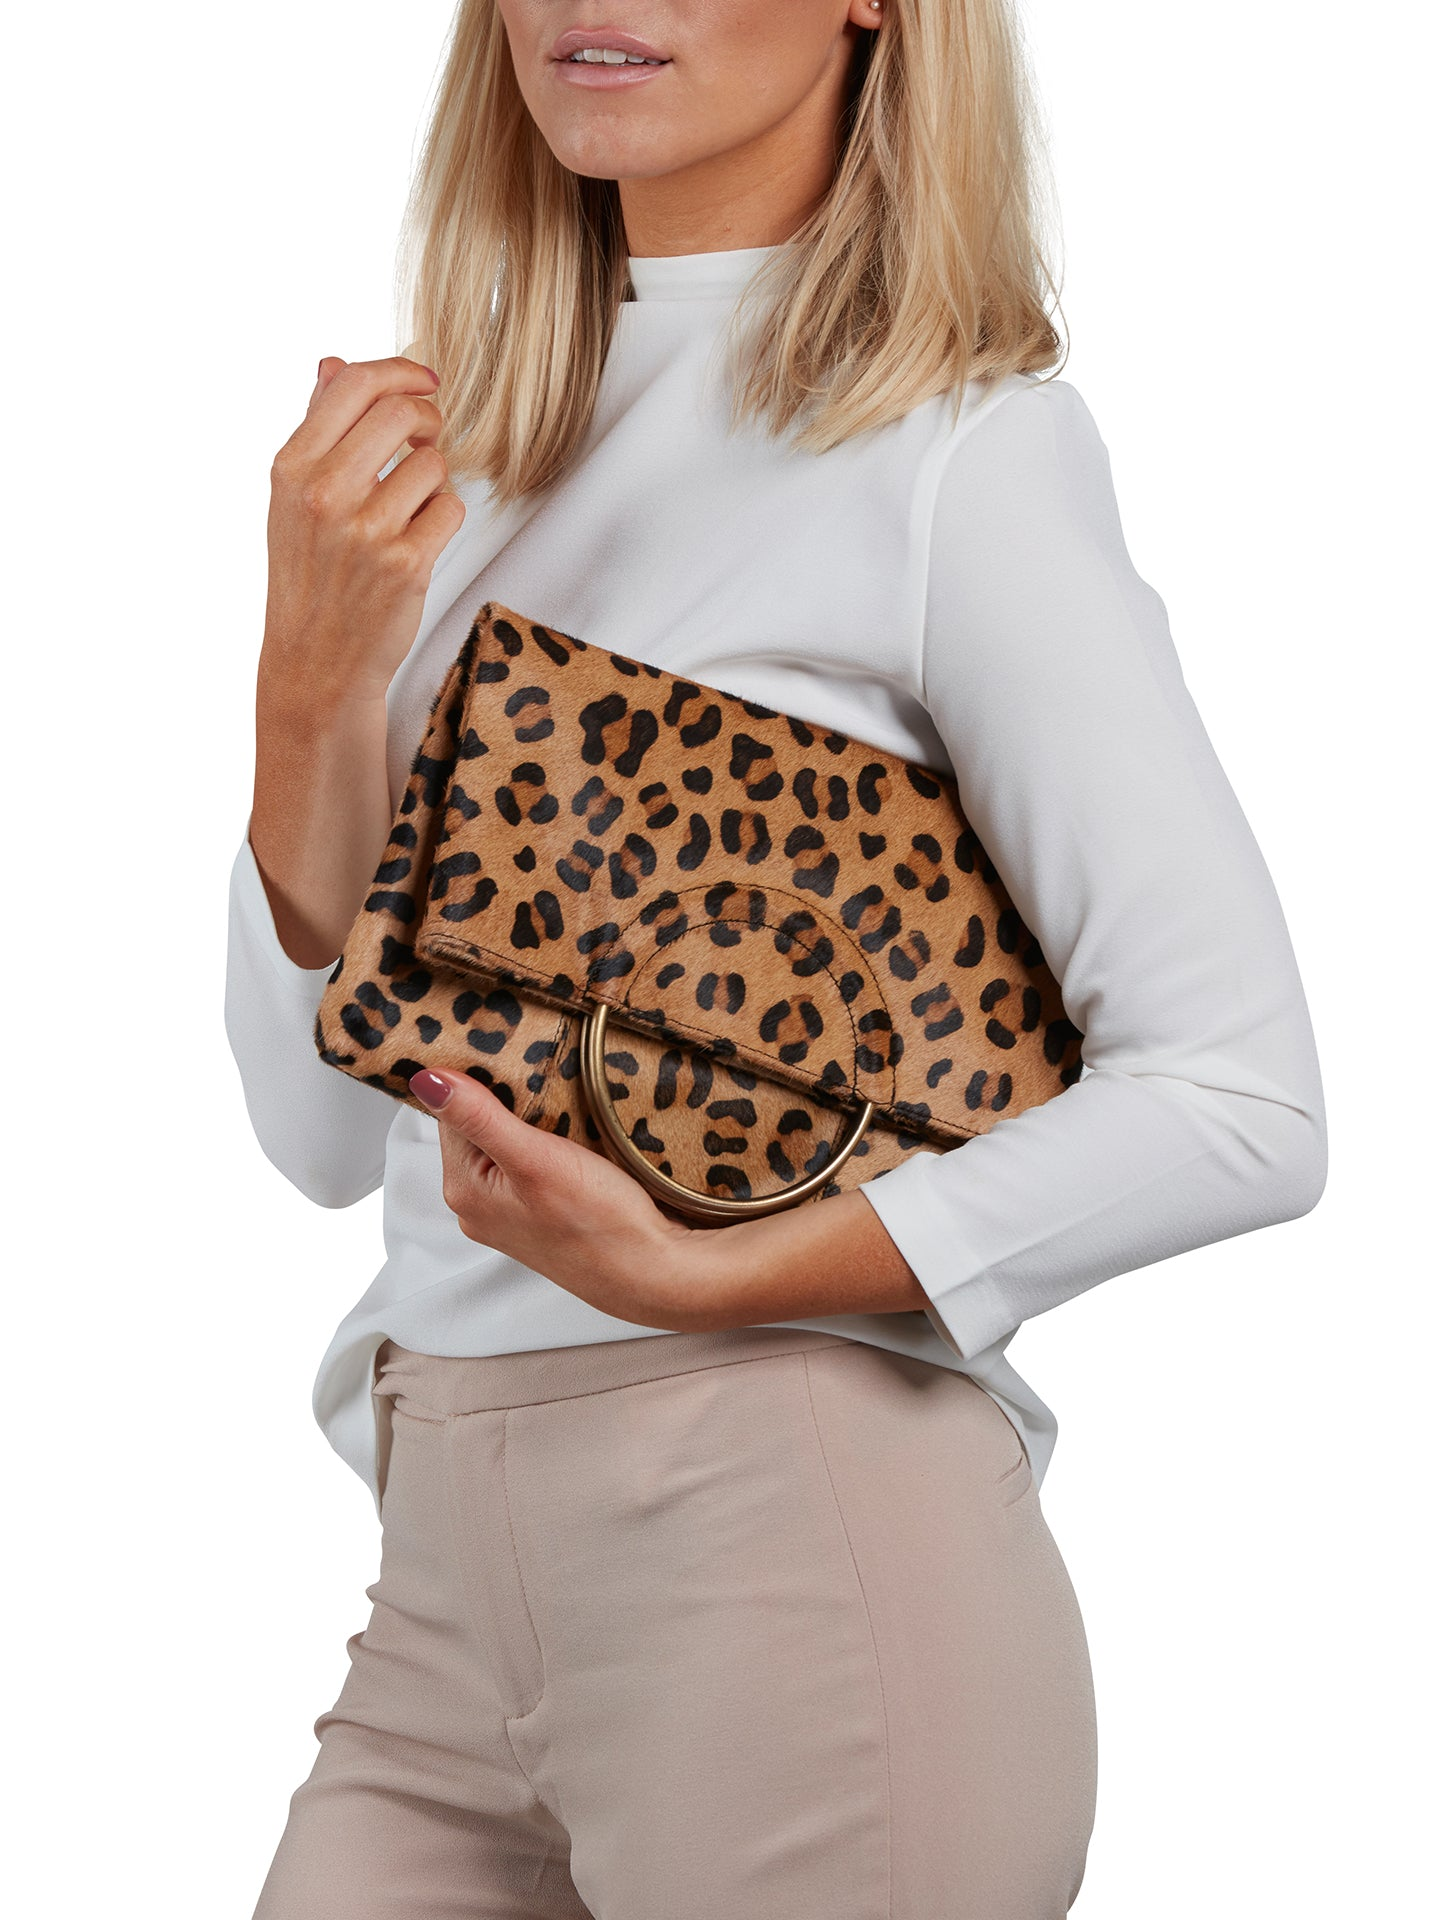 Leather Shoulder Bag - Leo